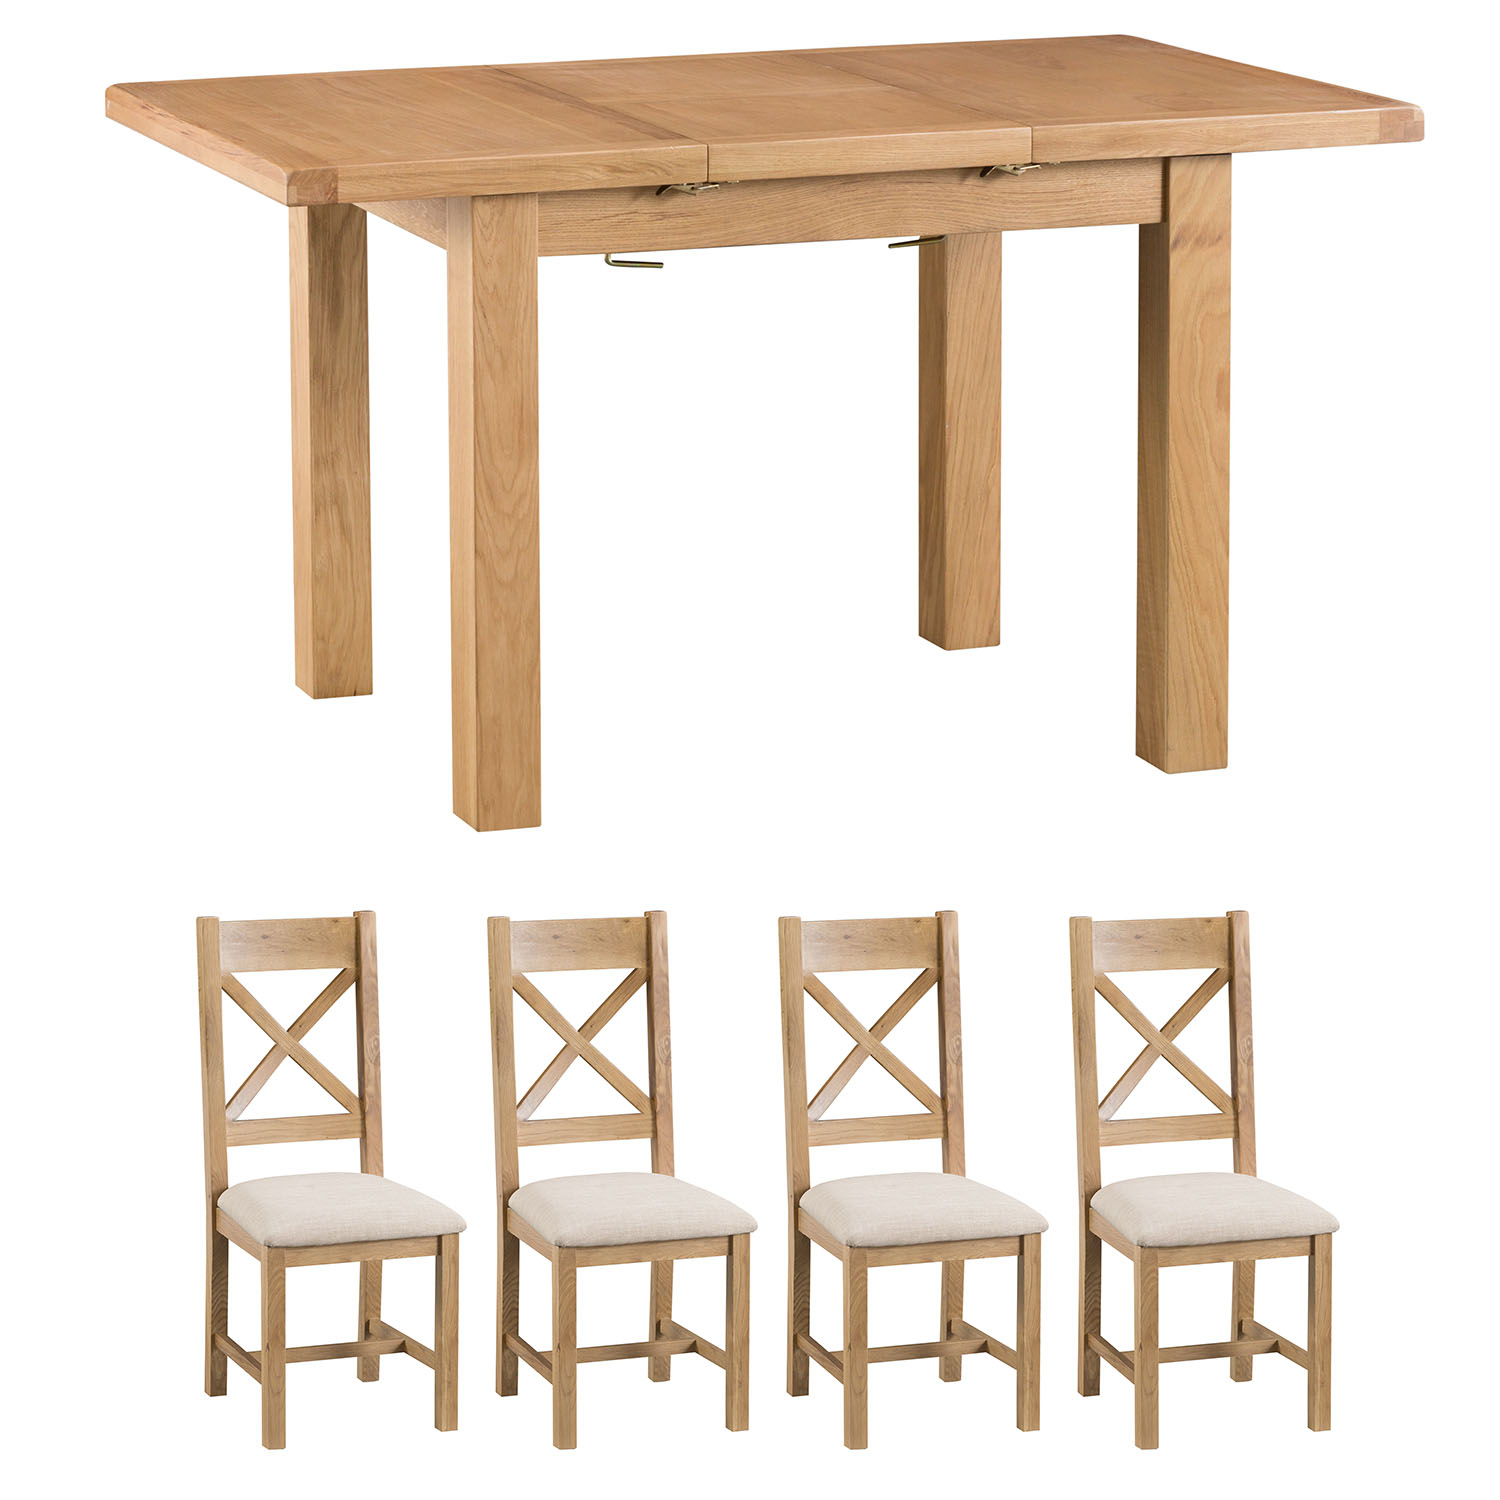 Oakley Rustic 100-140cm Butterfly Table and x4 Cross Back Chairs Set